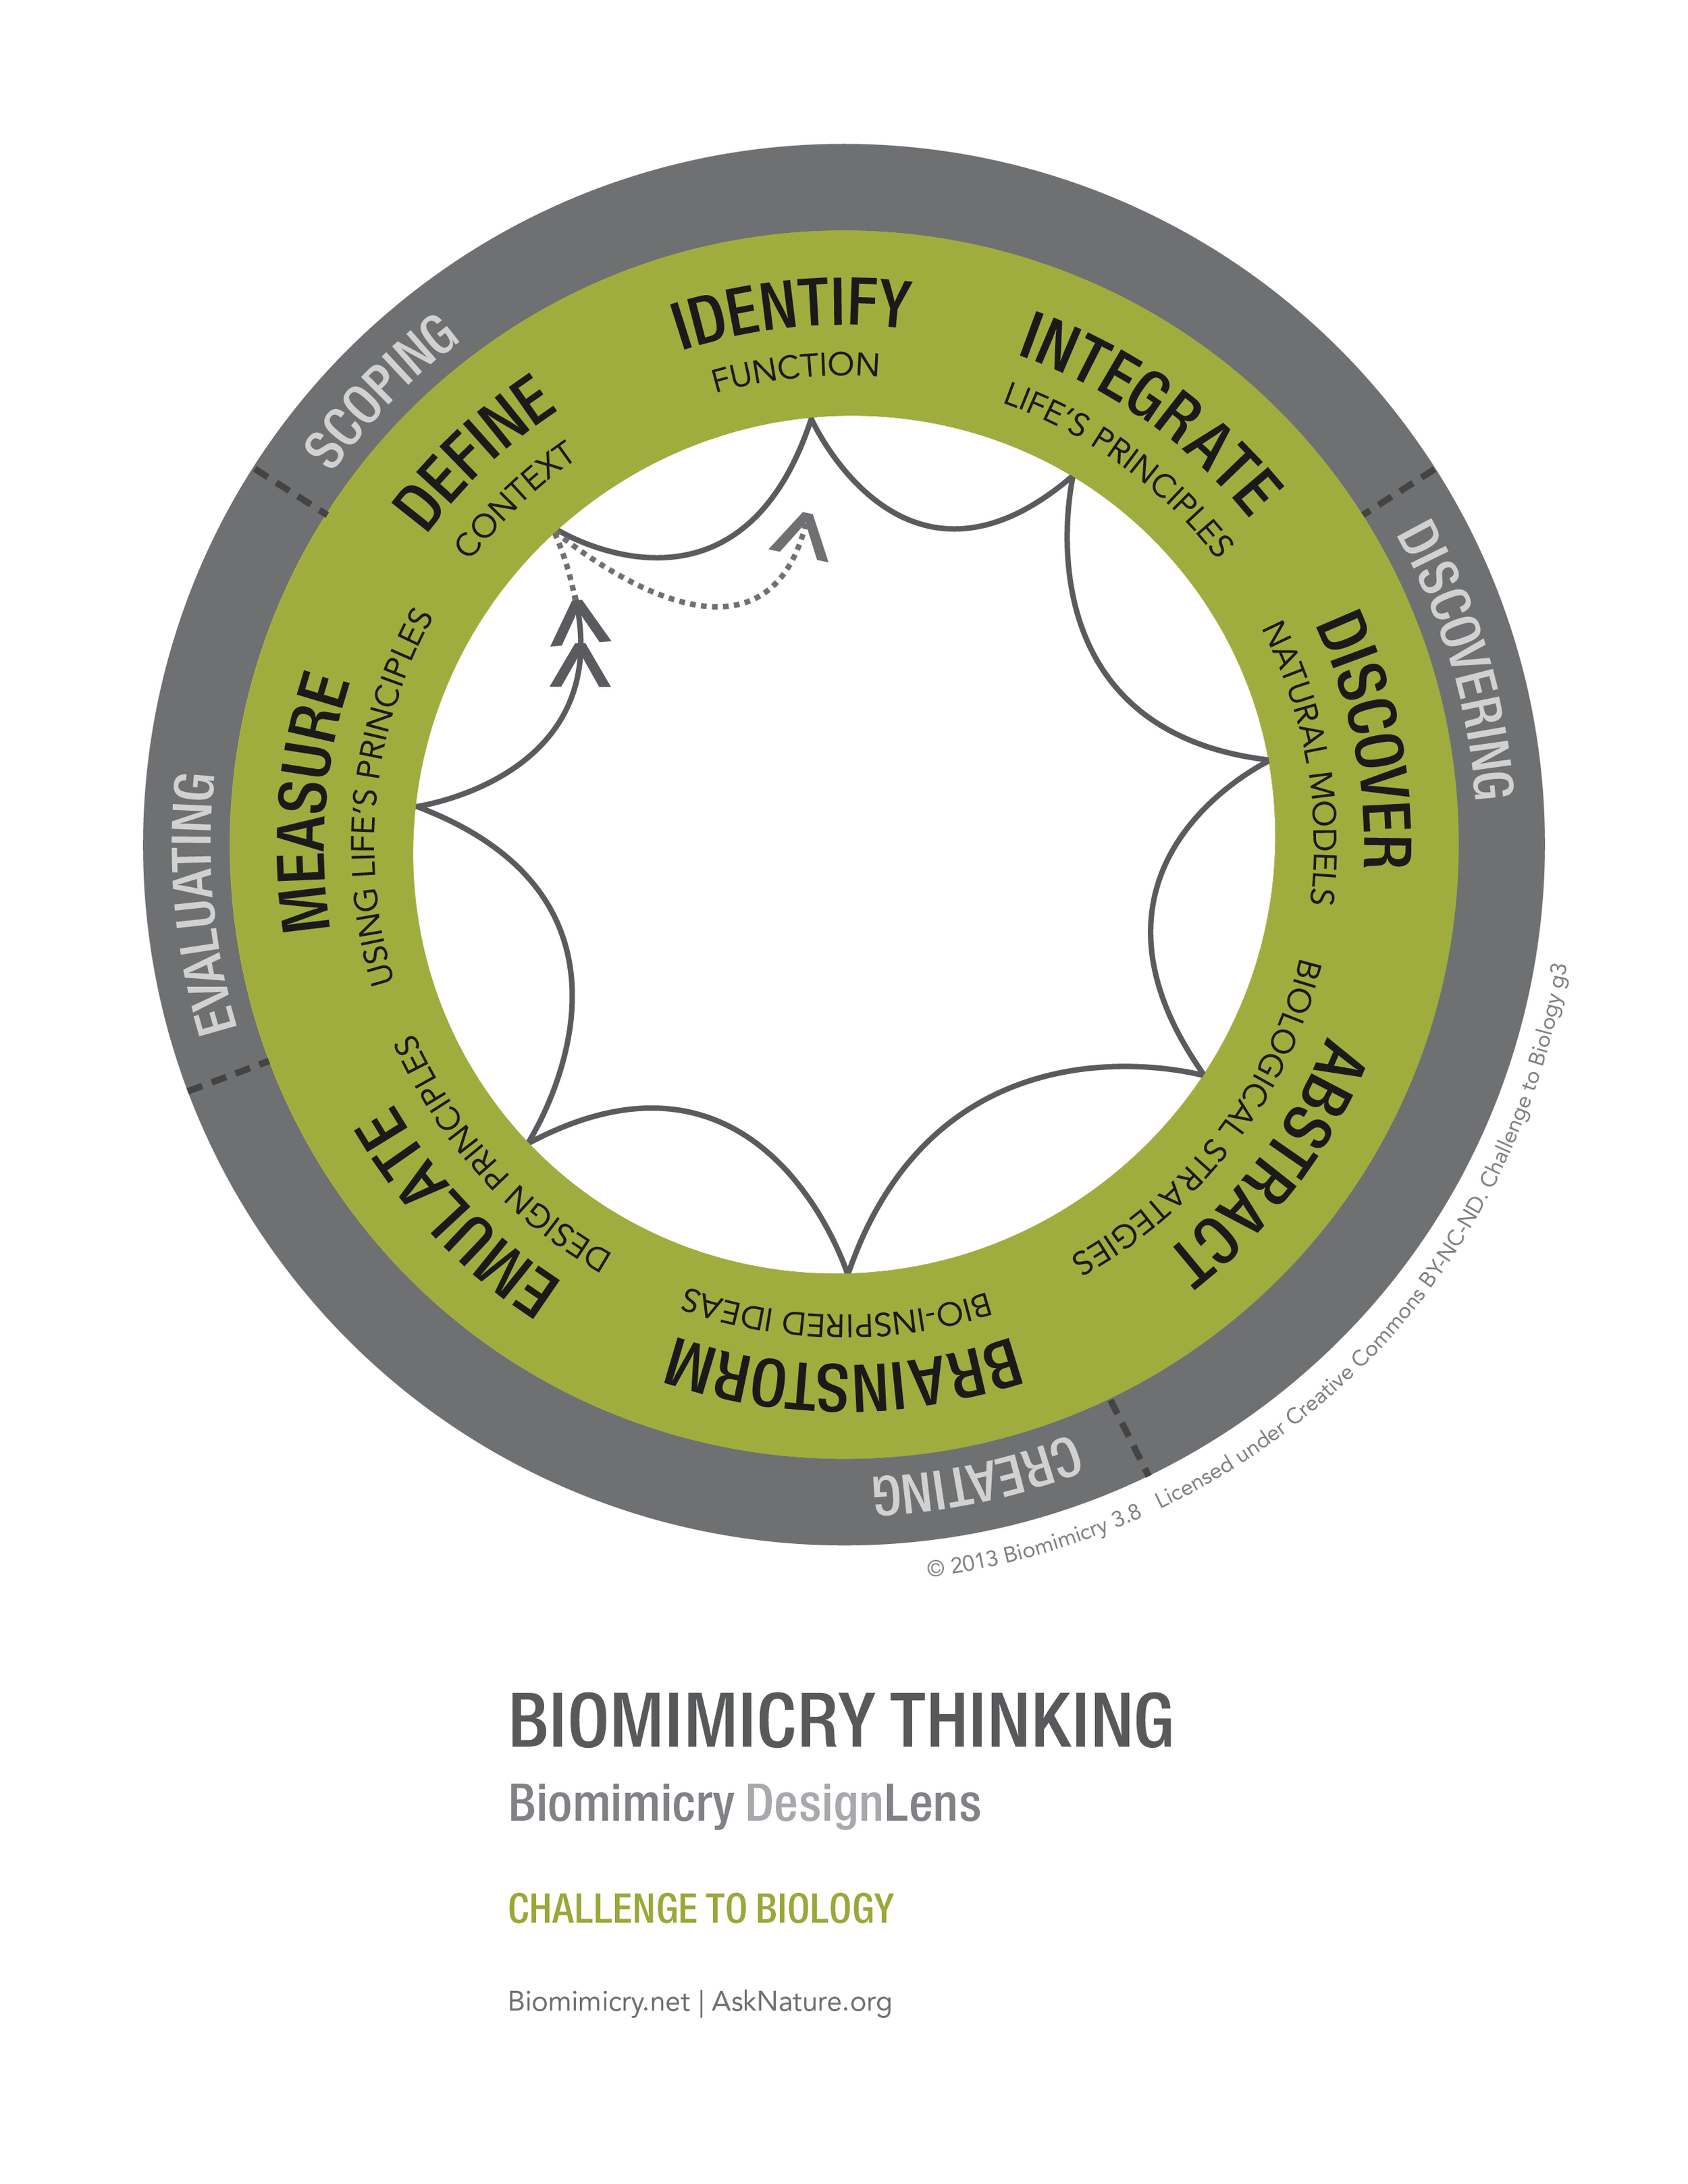 Biomimicry38_DesignLens_Challenge_to_Biology_WEB.jpg